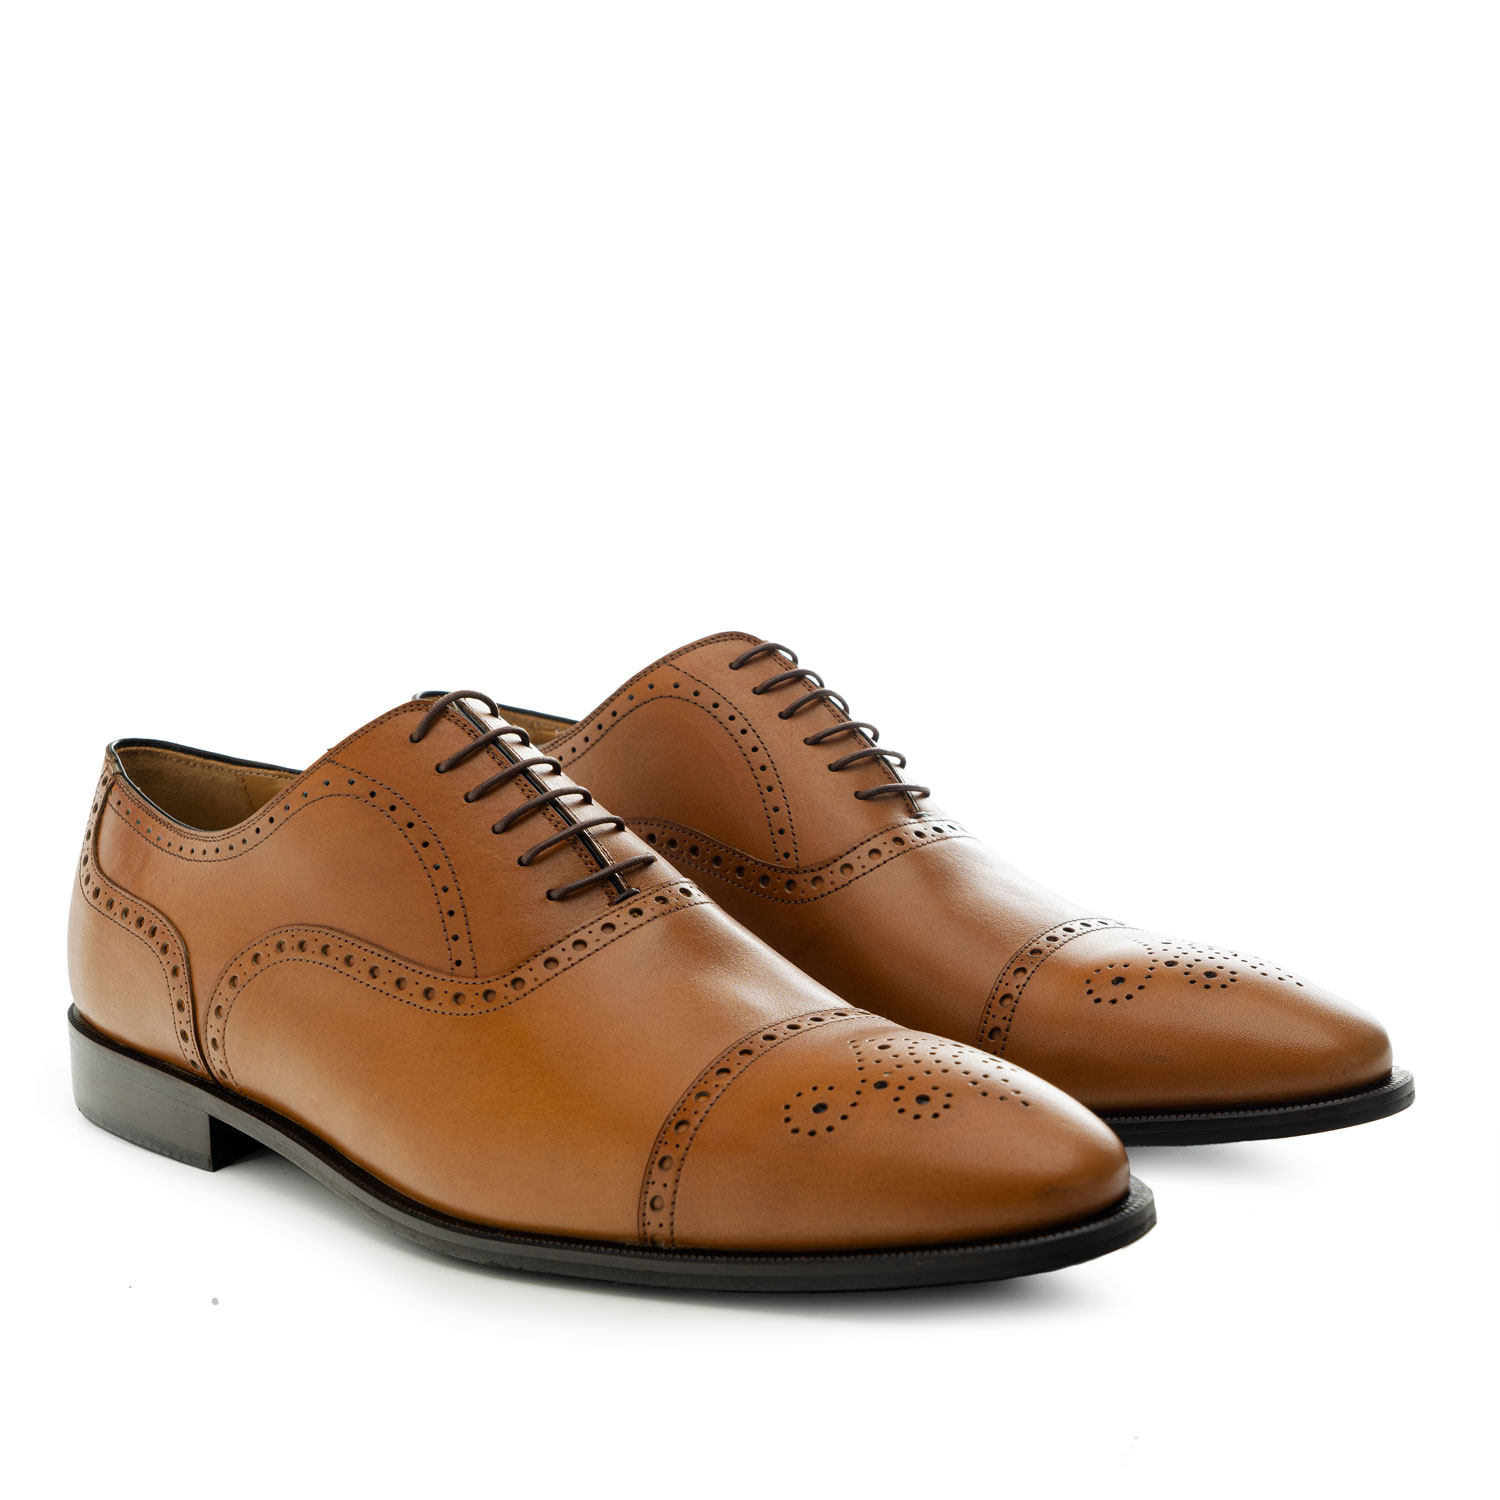 Oxford Shoes in Brown Leather